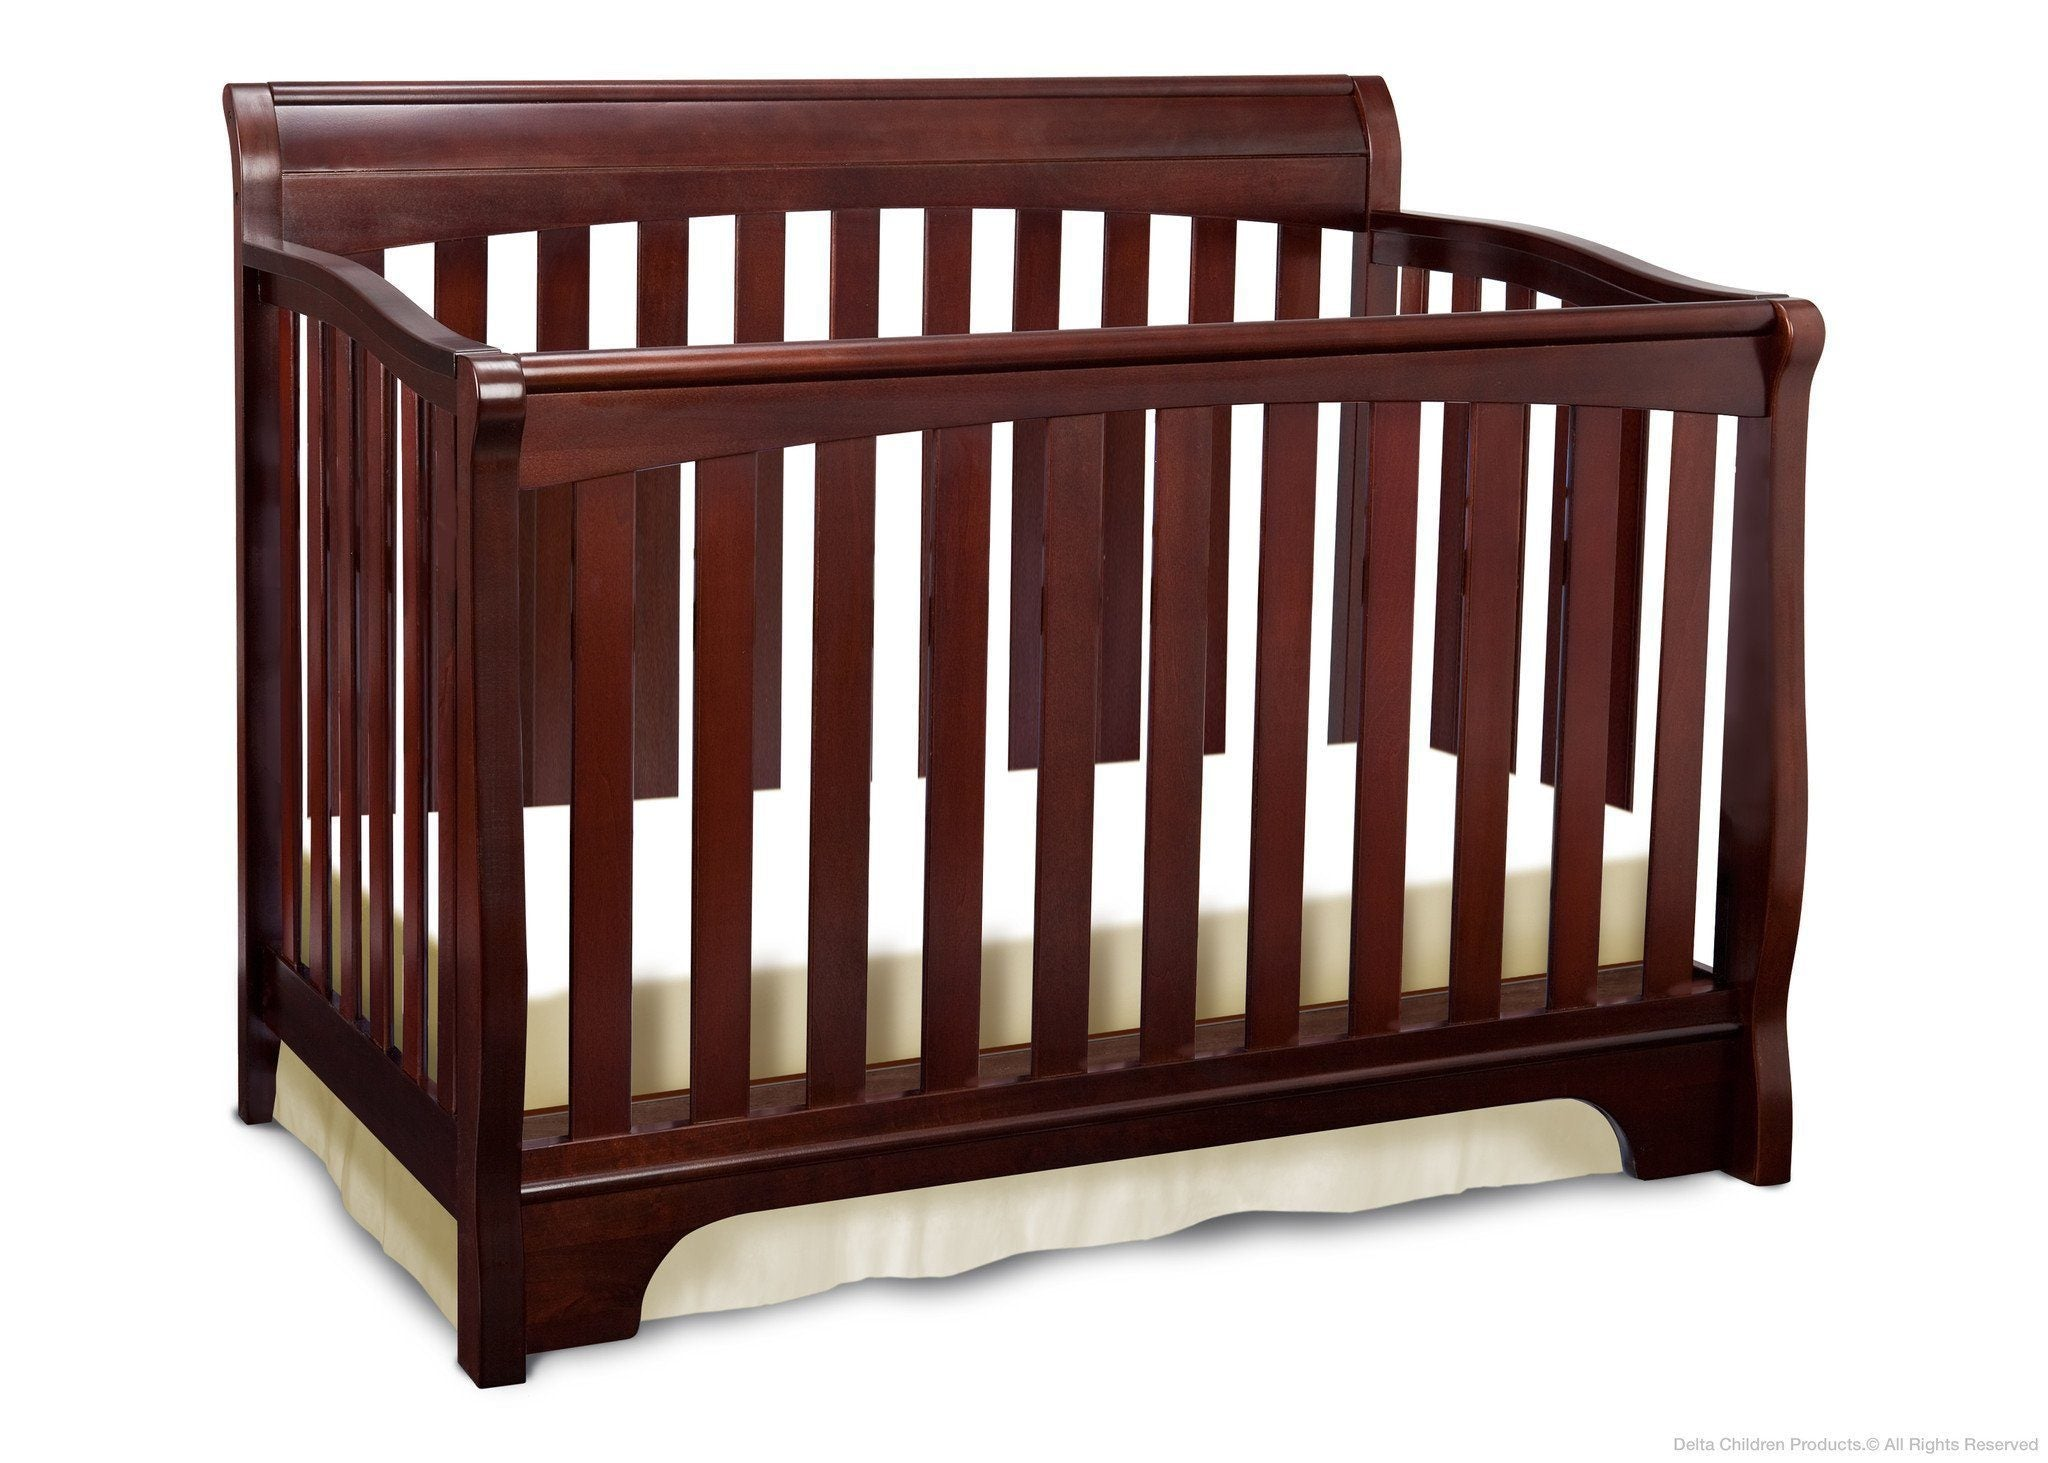 Delta Childrens Black Cherry Espresso (607) Eclipse 4-in-1 Crib c2c